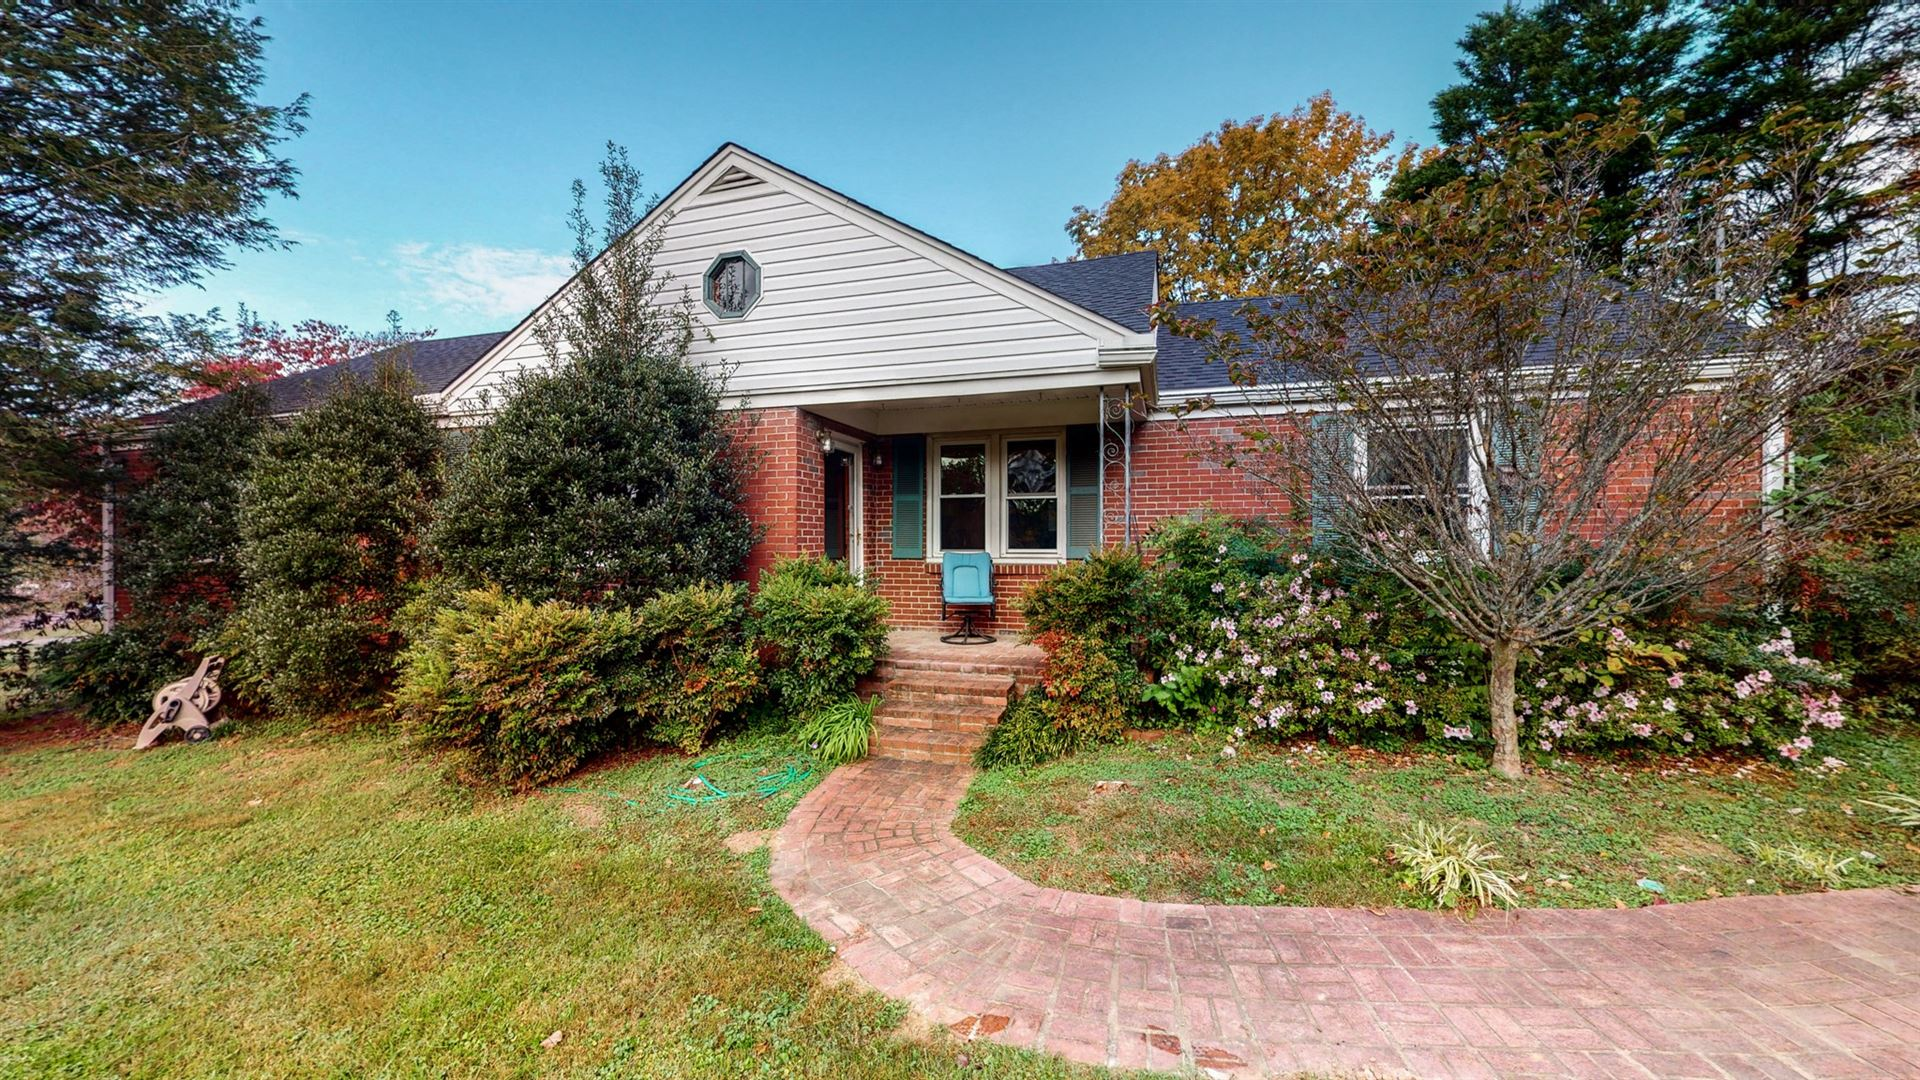 4721 Danby Dr, Nashville, TN 37211 - MLS#: 2202059